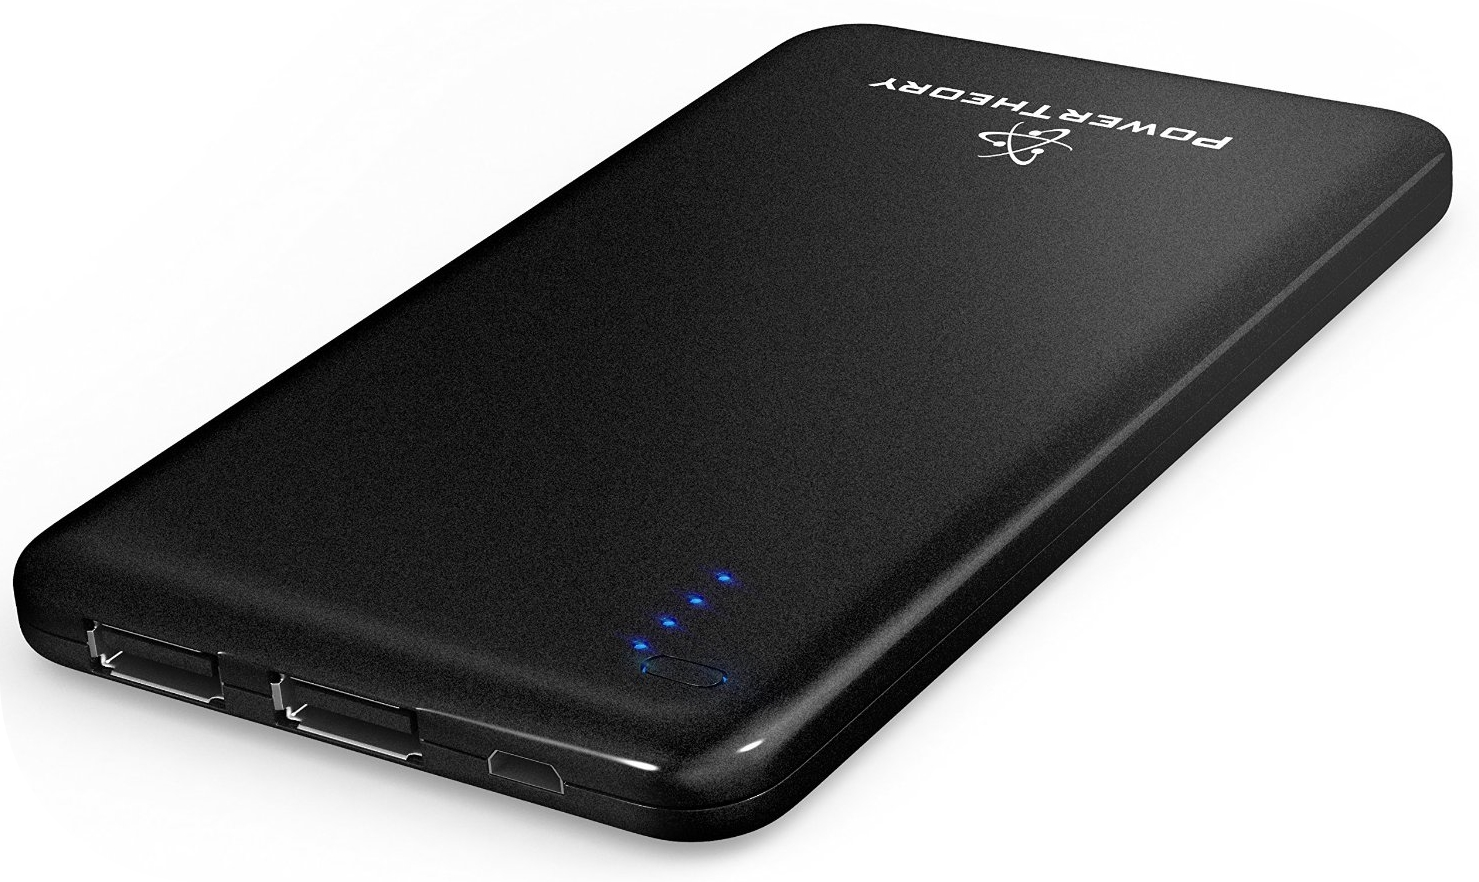 Portable Battery Heater Power Theory Ultra Slim 10000mah Portable Charger External Battery